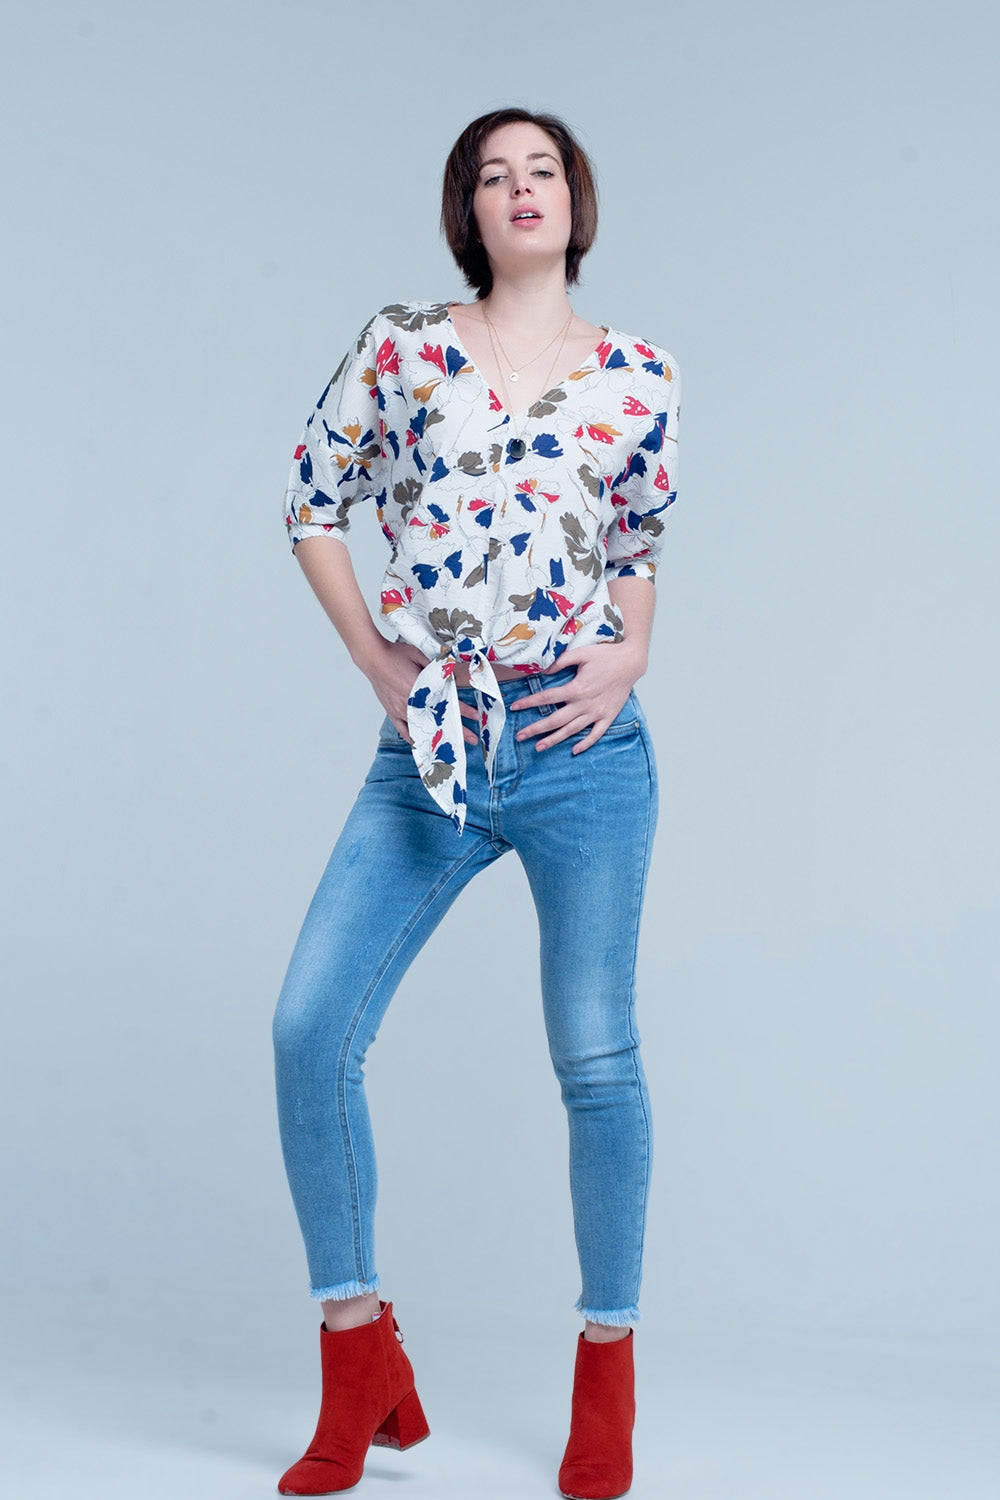 White Floral Tie Front Top-Women - Apparel - Shirts - Blouses-Product Details White floral top made of light and airy viscose this top has sleeves with a cufflink it has a v neck and the top can be tied at the front-Keyomi-Sook